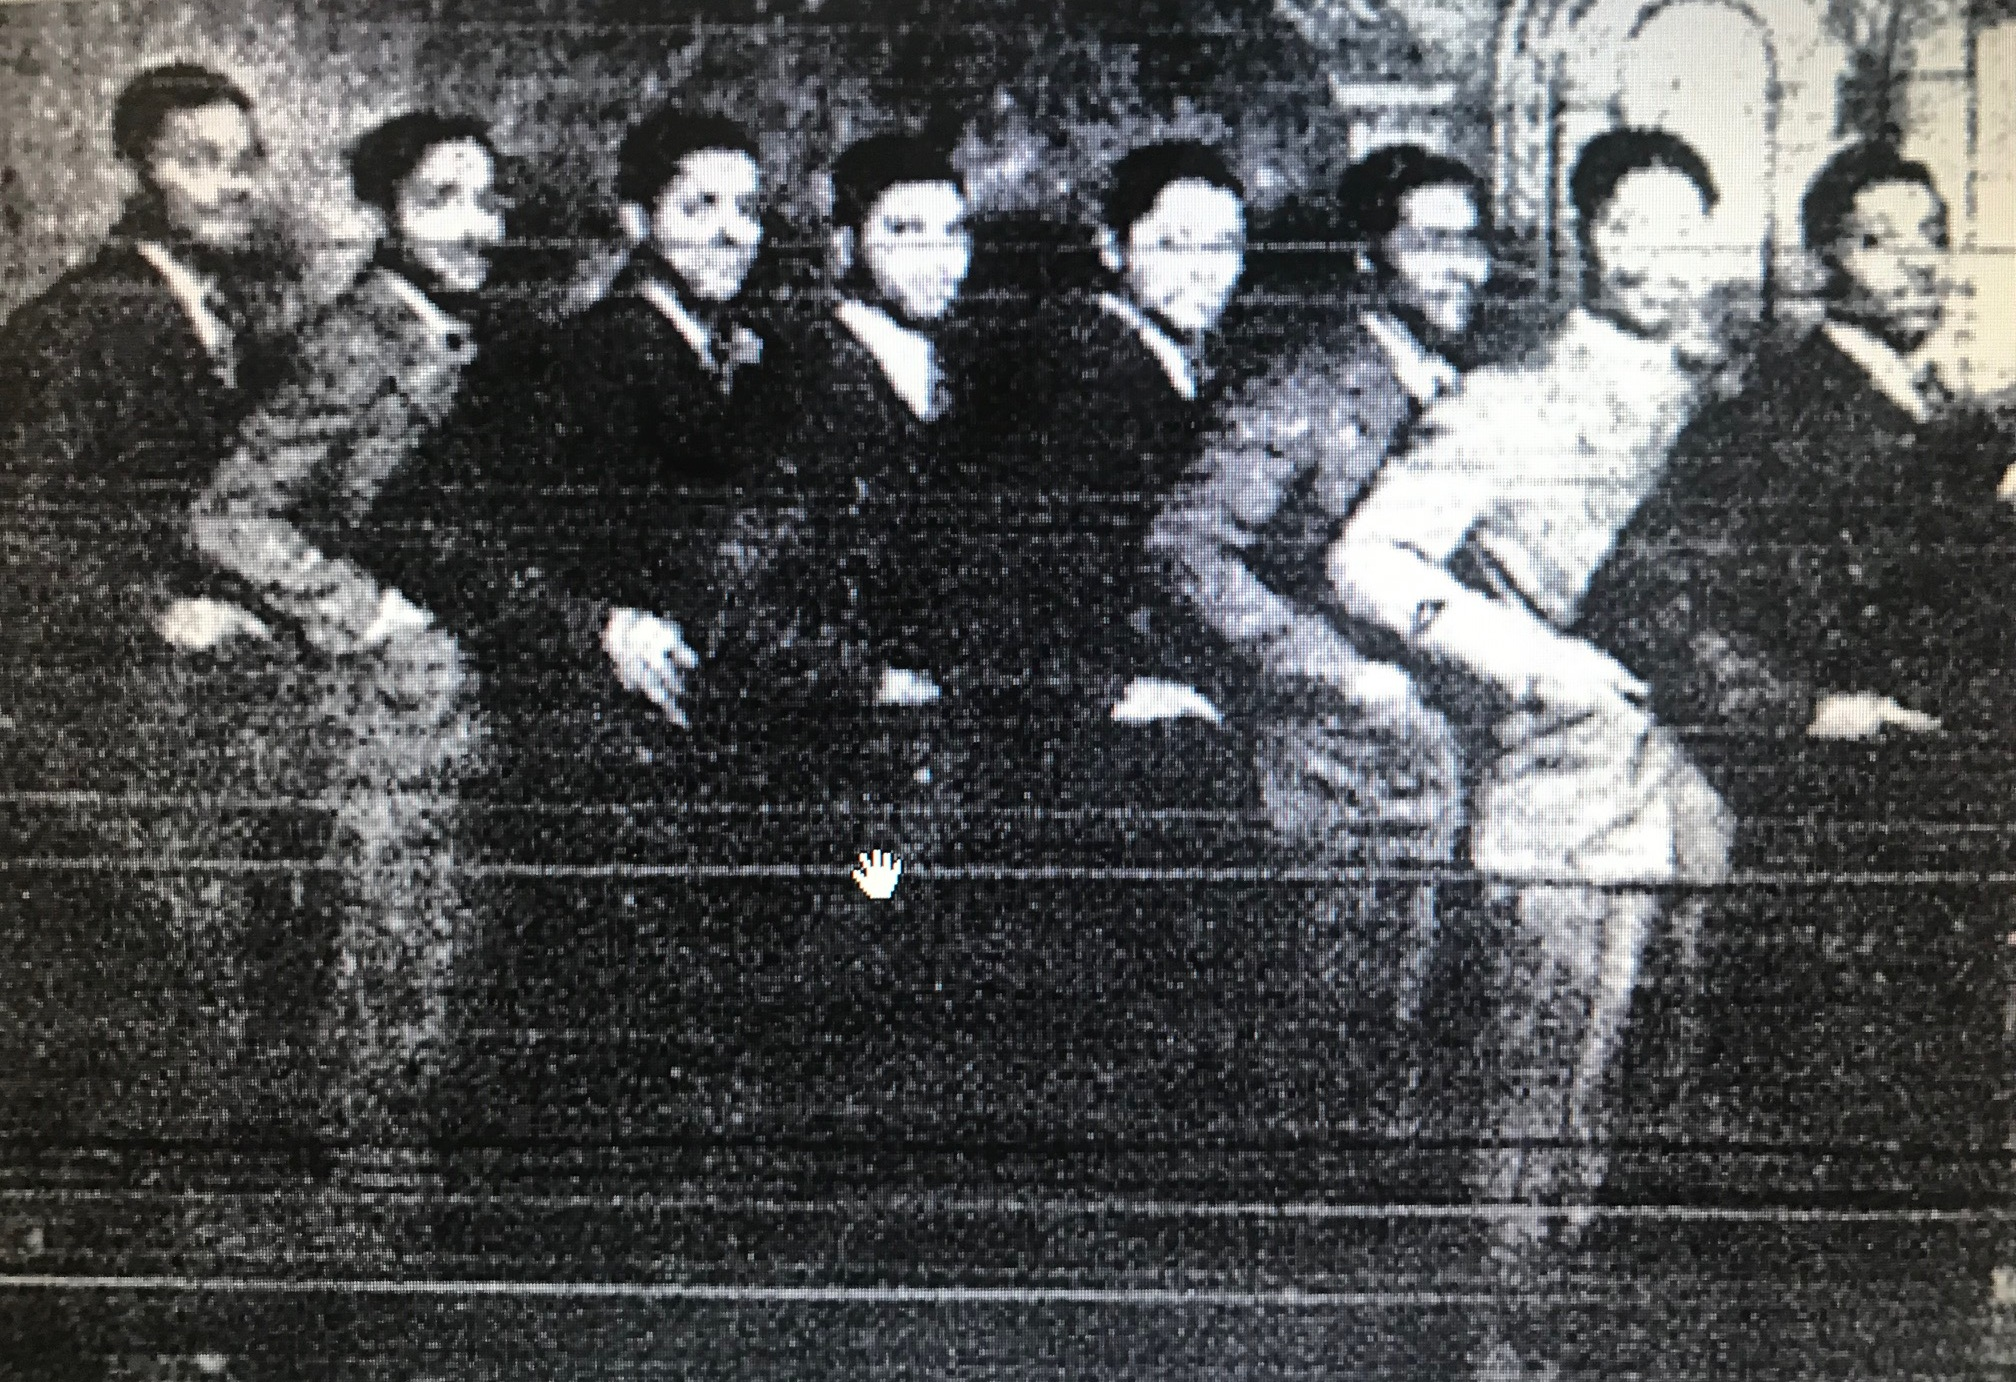 """The Myers Brothers - """"The Myers Brothers"""" who """"drove taxis during the week and, on the weekends, were well-known as the Myers Brothers Dance Band. They played in Cincinnati and Dayton and included John, Elhue (unsure of spelling), David, James, Cleophus, Clarence, Frizell and William (The Shoe Shine Doctor)."""""""